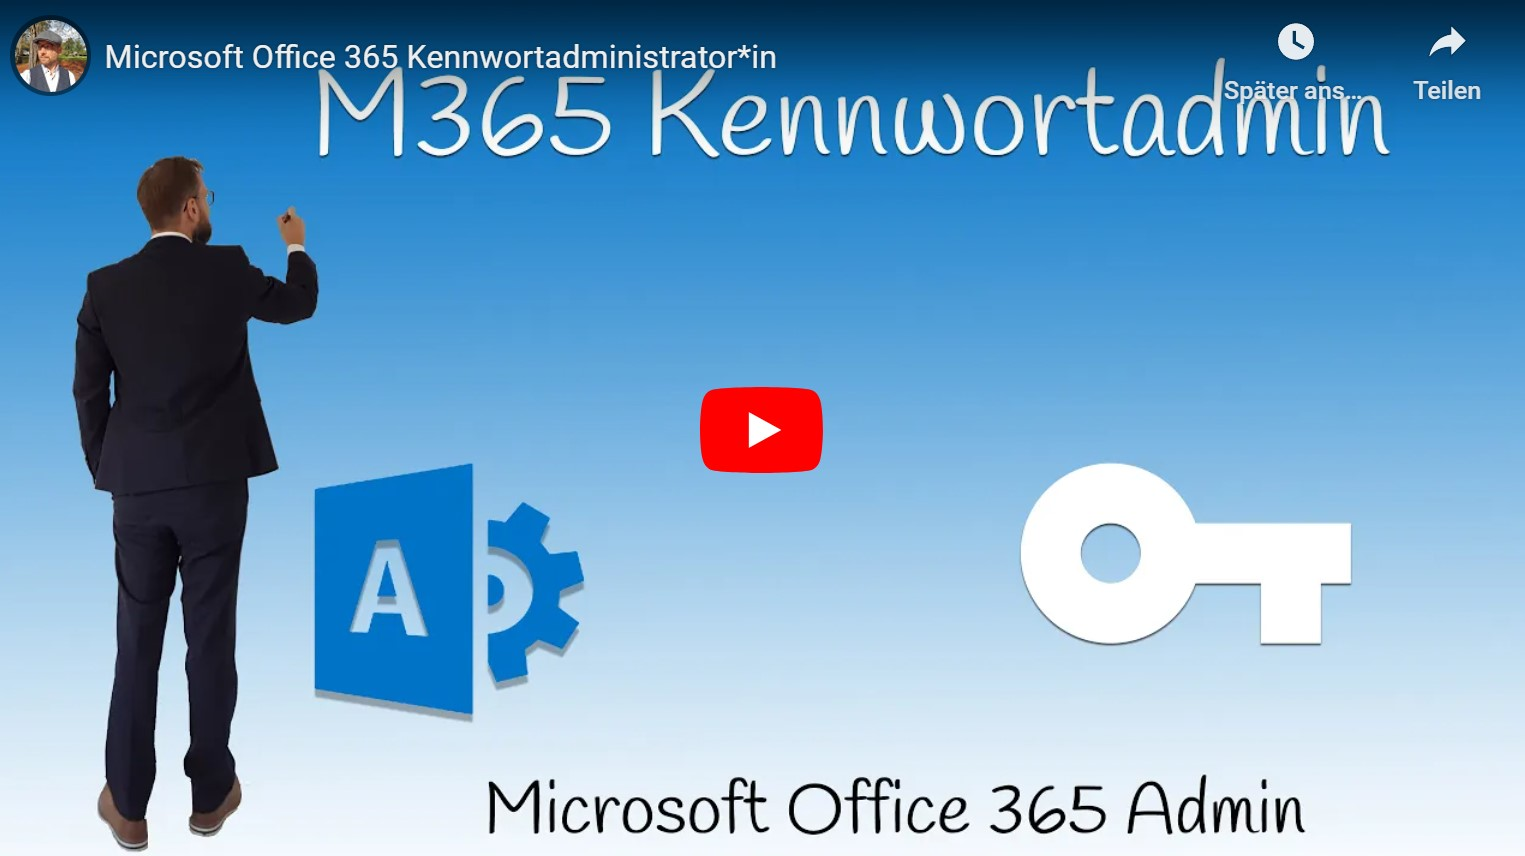 icrosoft Office 365 Kennwortadministrator